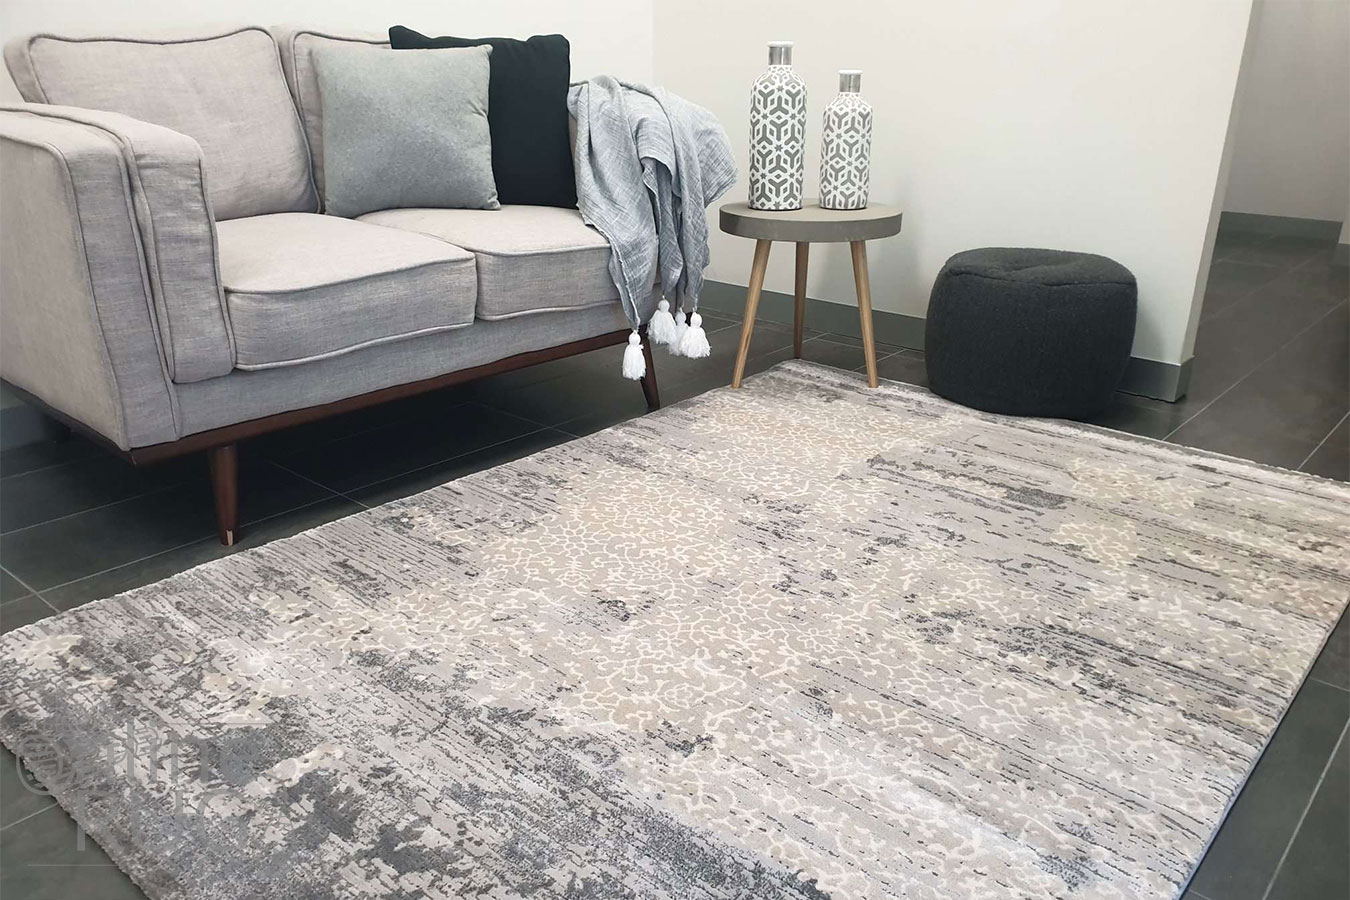 Thelma Grey Beige Faded Wash Abstract Floral Rug